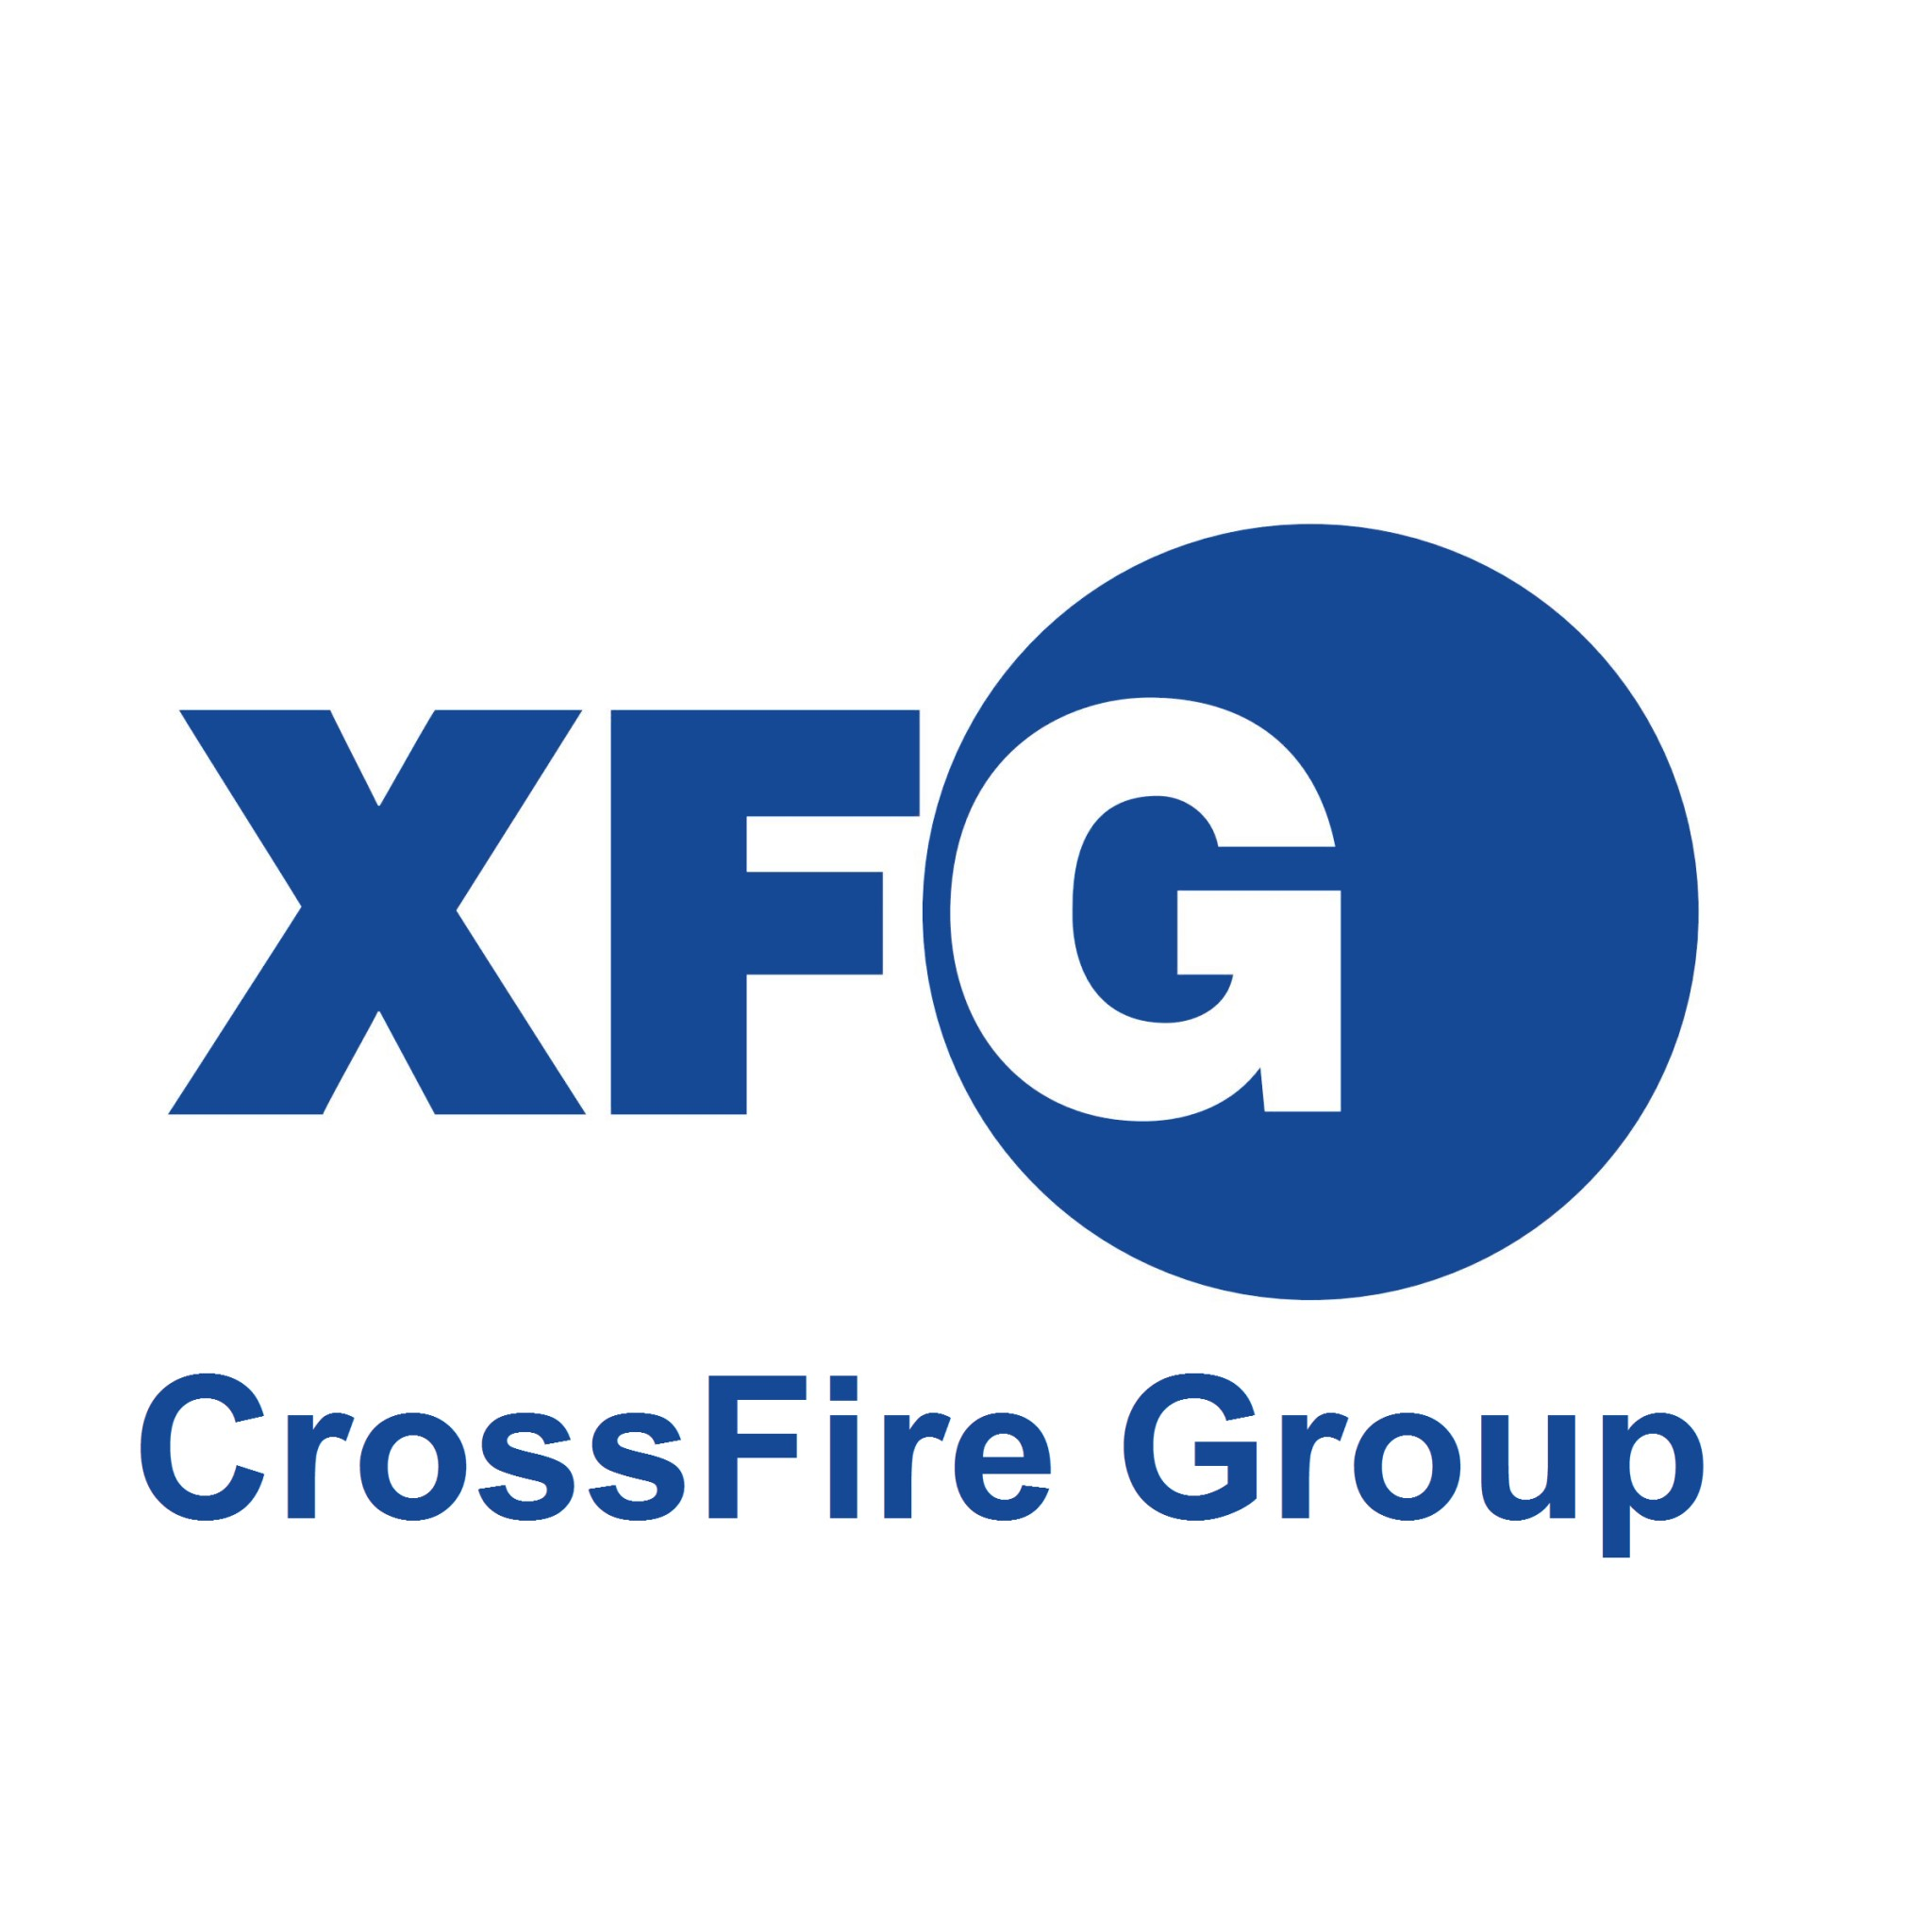 CrossFire Group